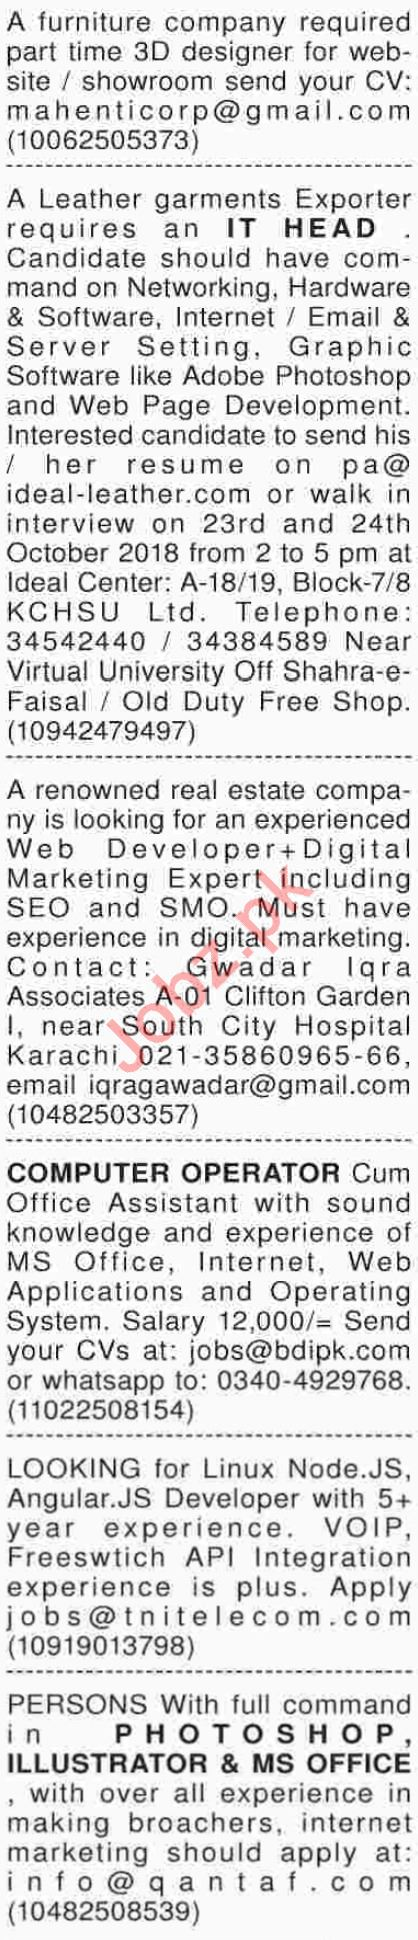 Dawn Sunday Computer / IT Classified Ads 21/10/2018